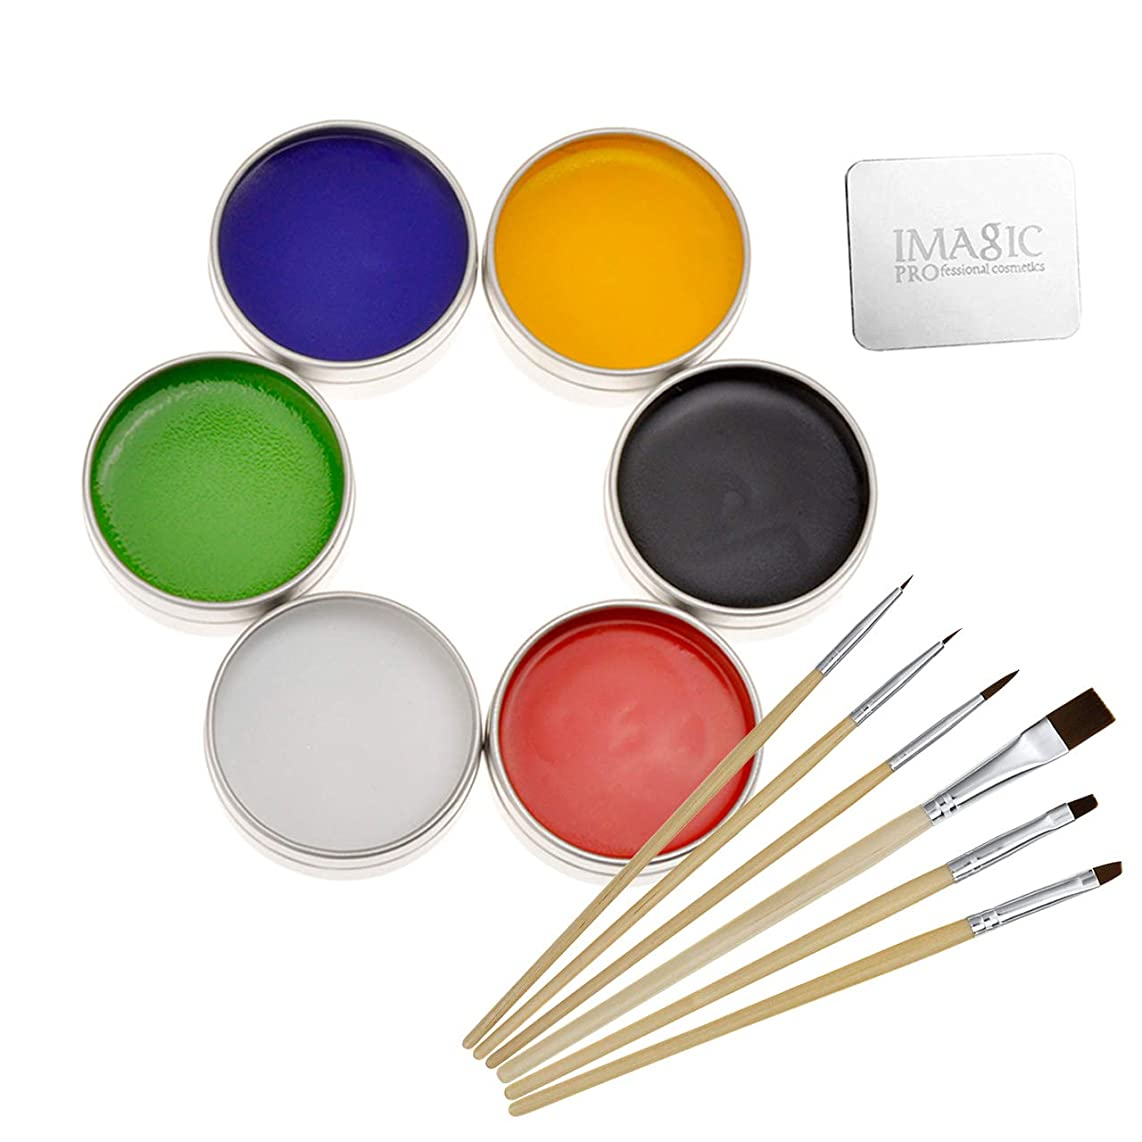 CCbeauty Professional Face Body Paint Art Makeup Set Halloween Party X'Mas (Painting Set with Palette Ring and Brush)